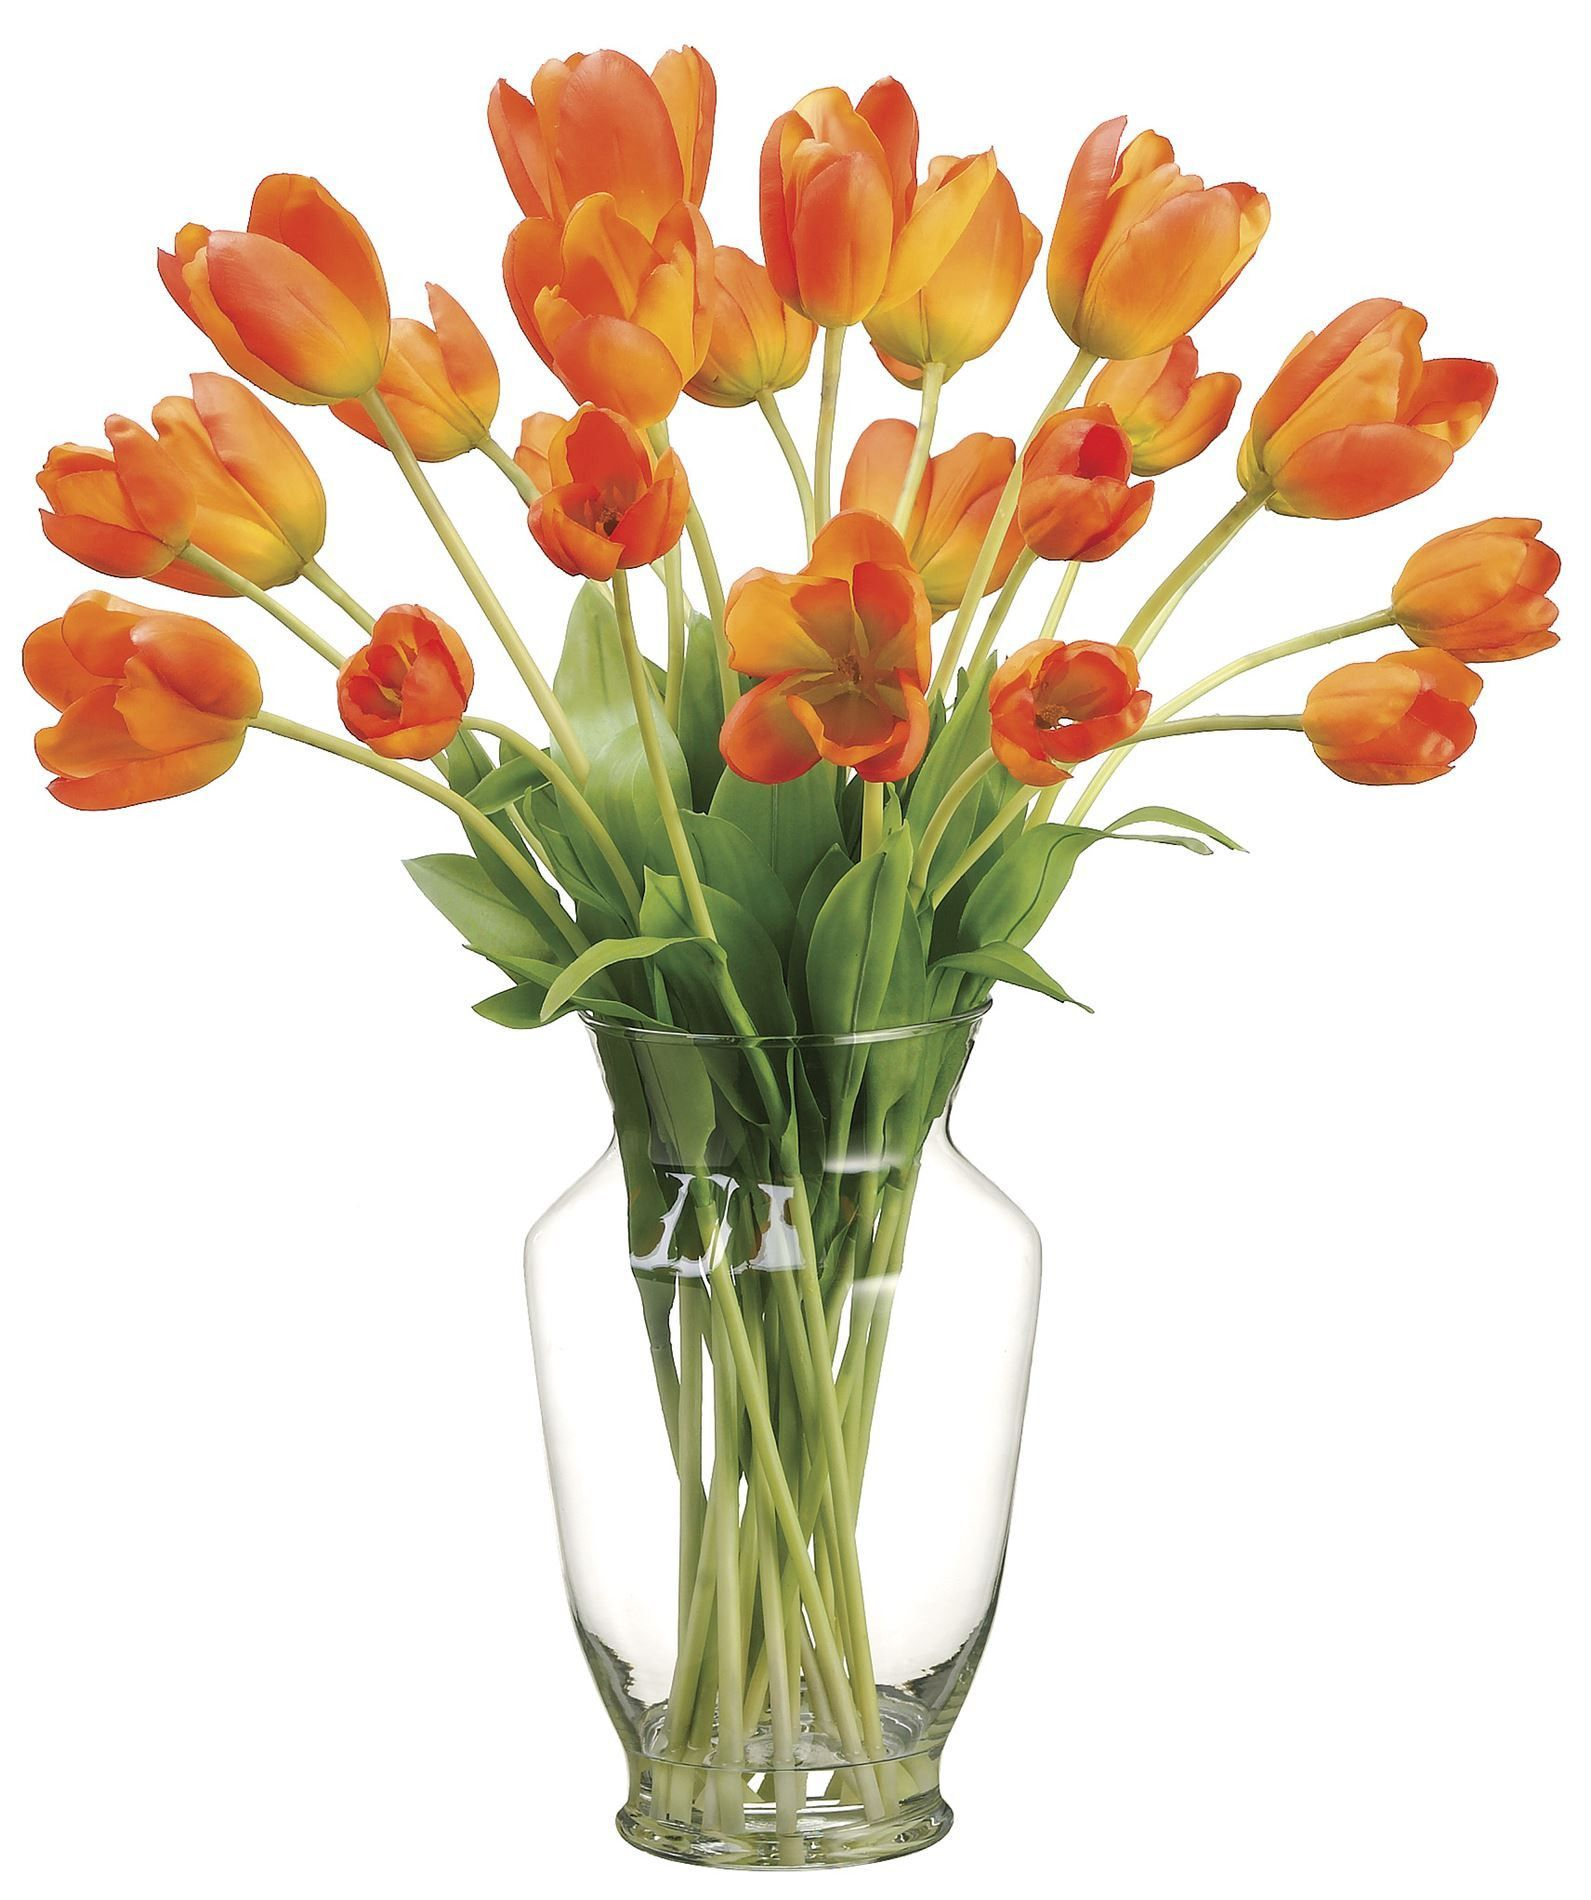 tulip reviews in decorative decor tulips jane floral seymour wayfair pillows vase arrangement botanicals arranged pdp